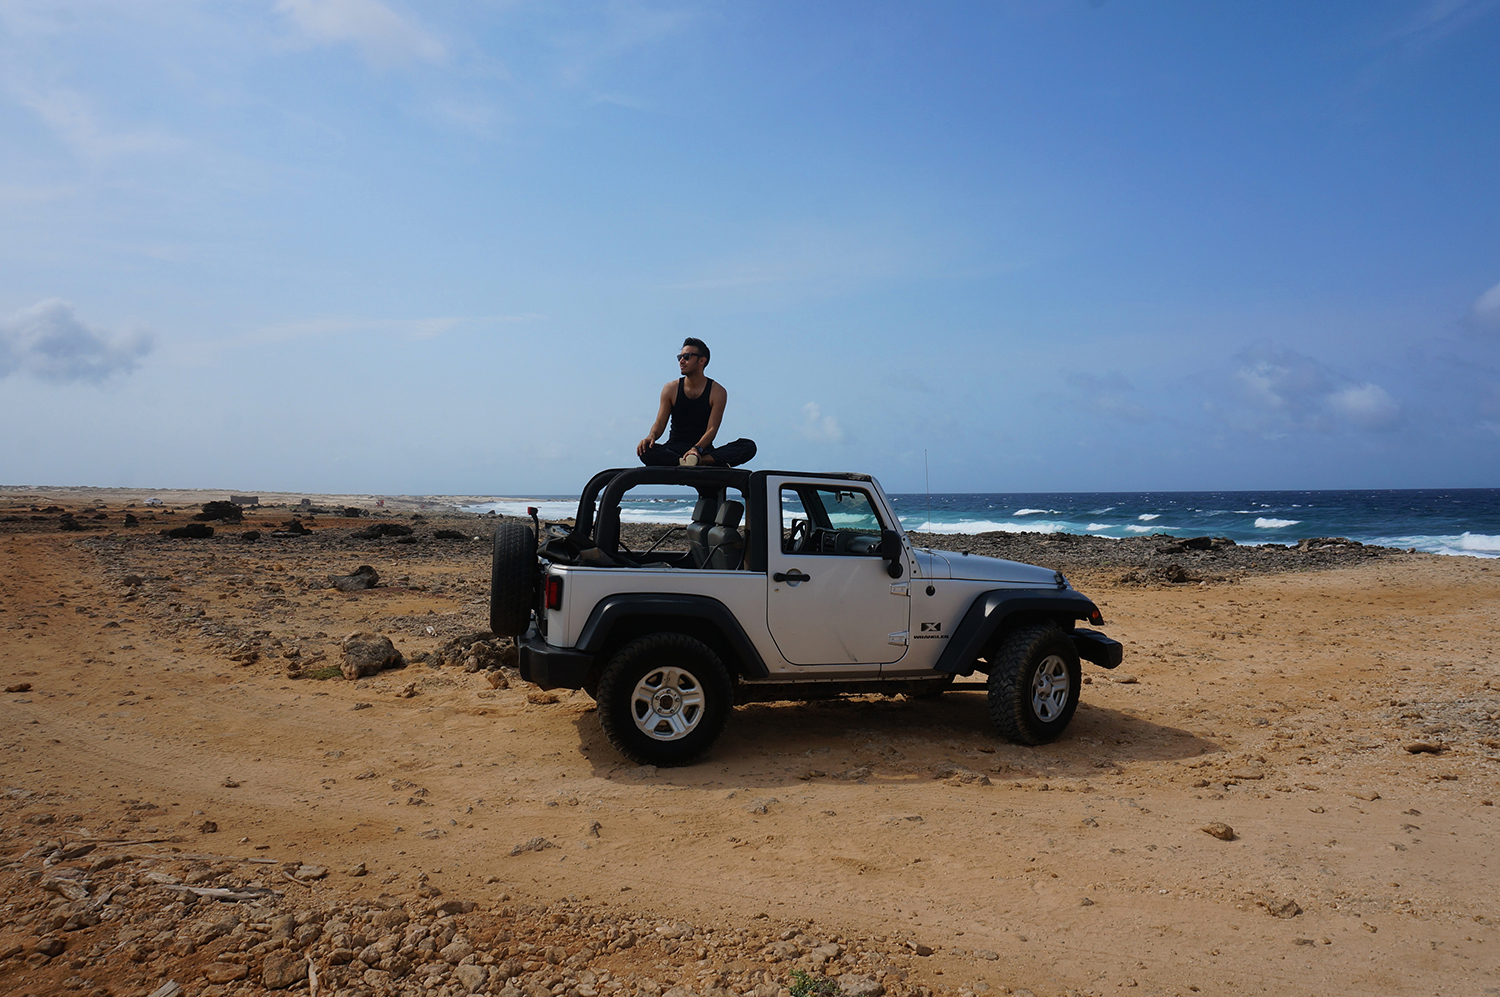 Smart Rent Jeep Rental in Aruba